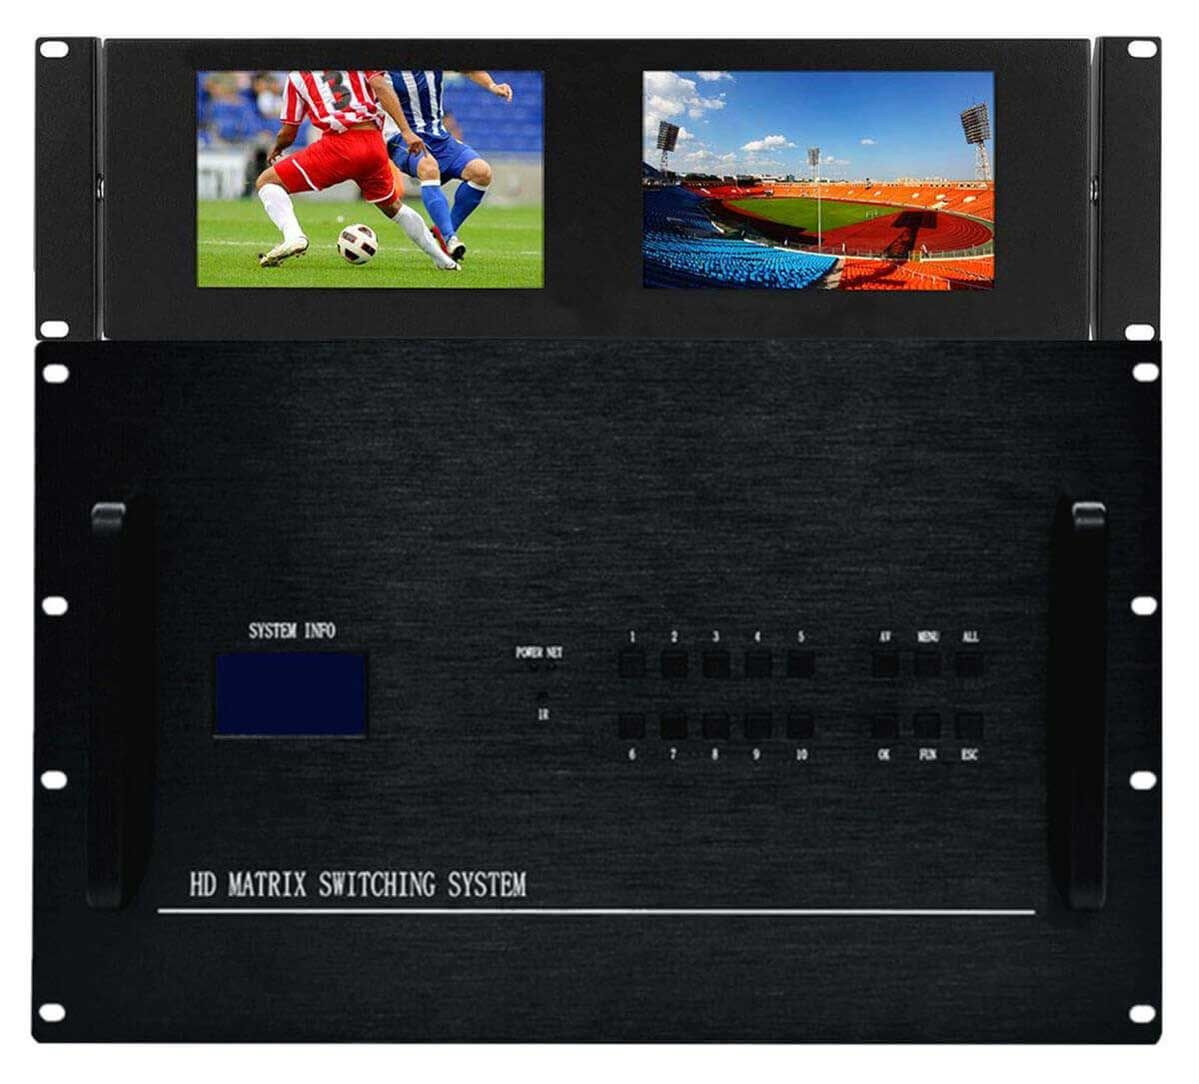 4K 20x16 HDMI Matrix HDBaseT Switch with 16-CAT5 Extenders